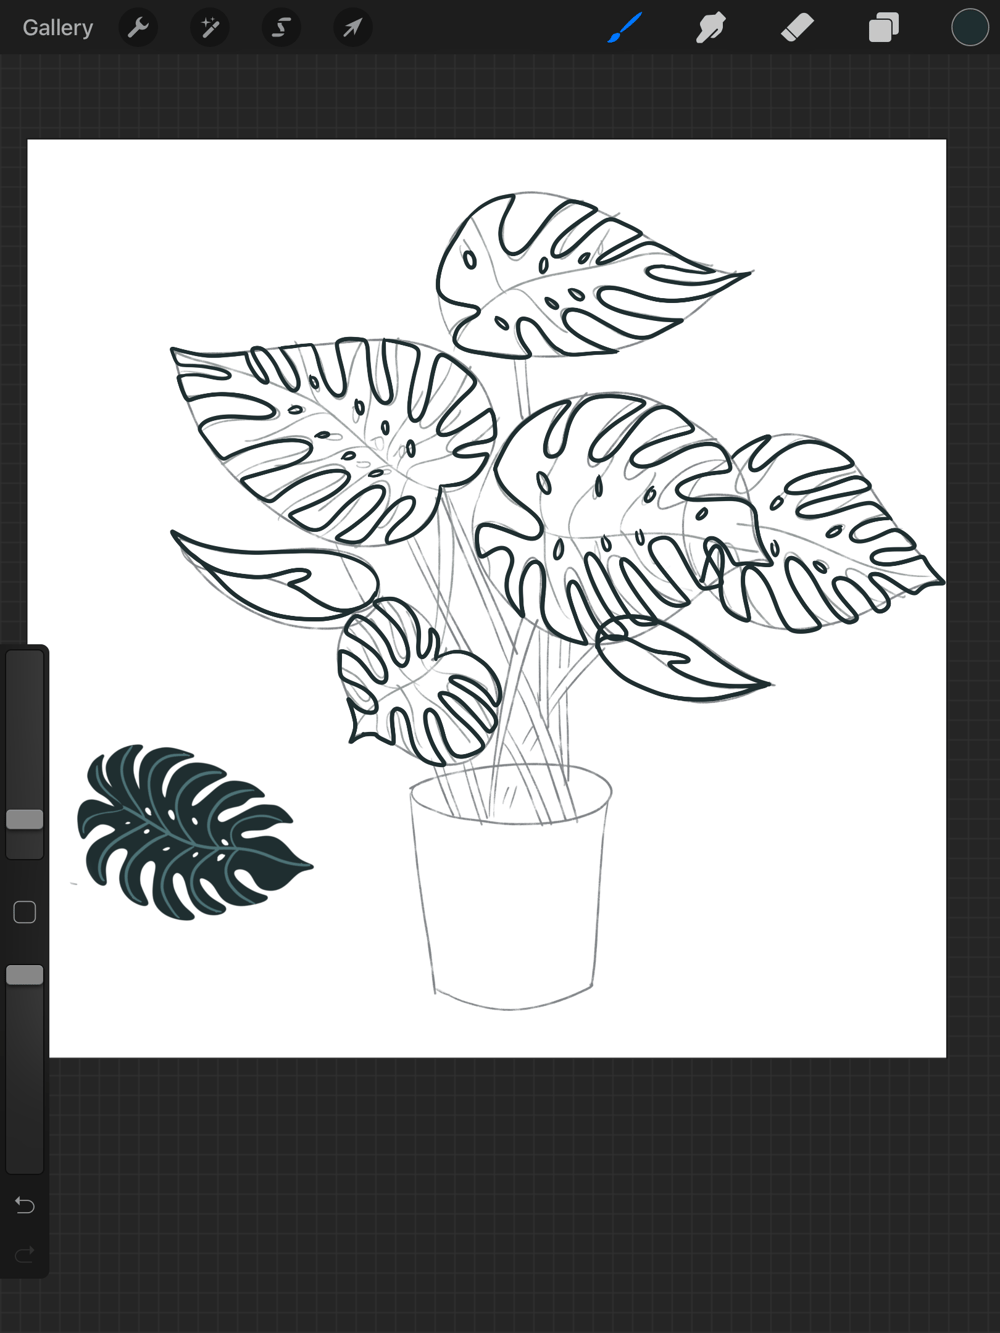 Cats and plants! - image 6 - student project